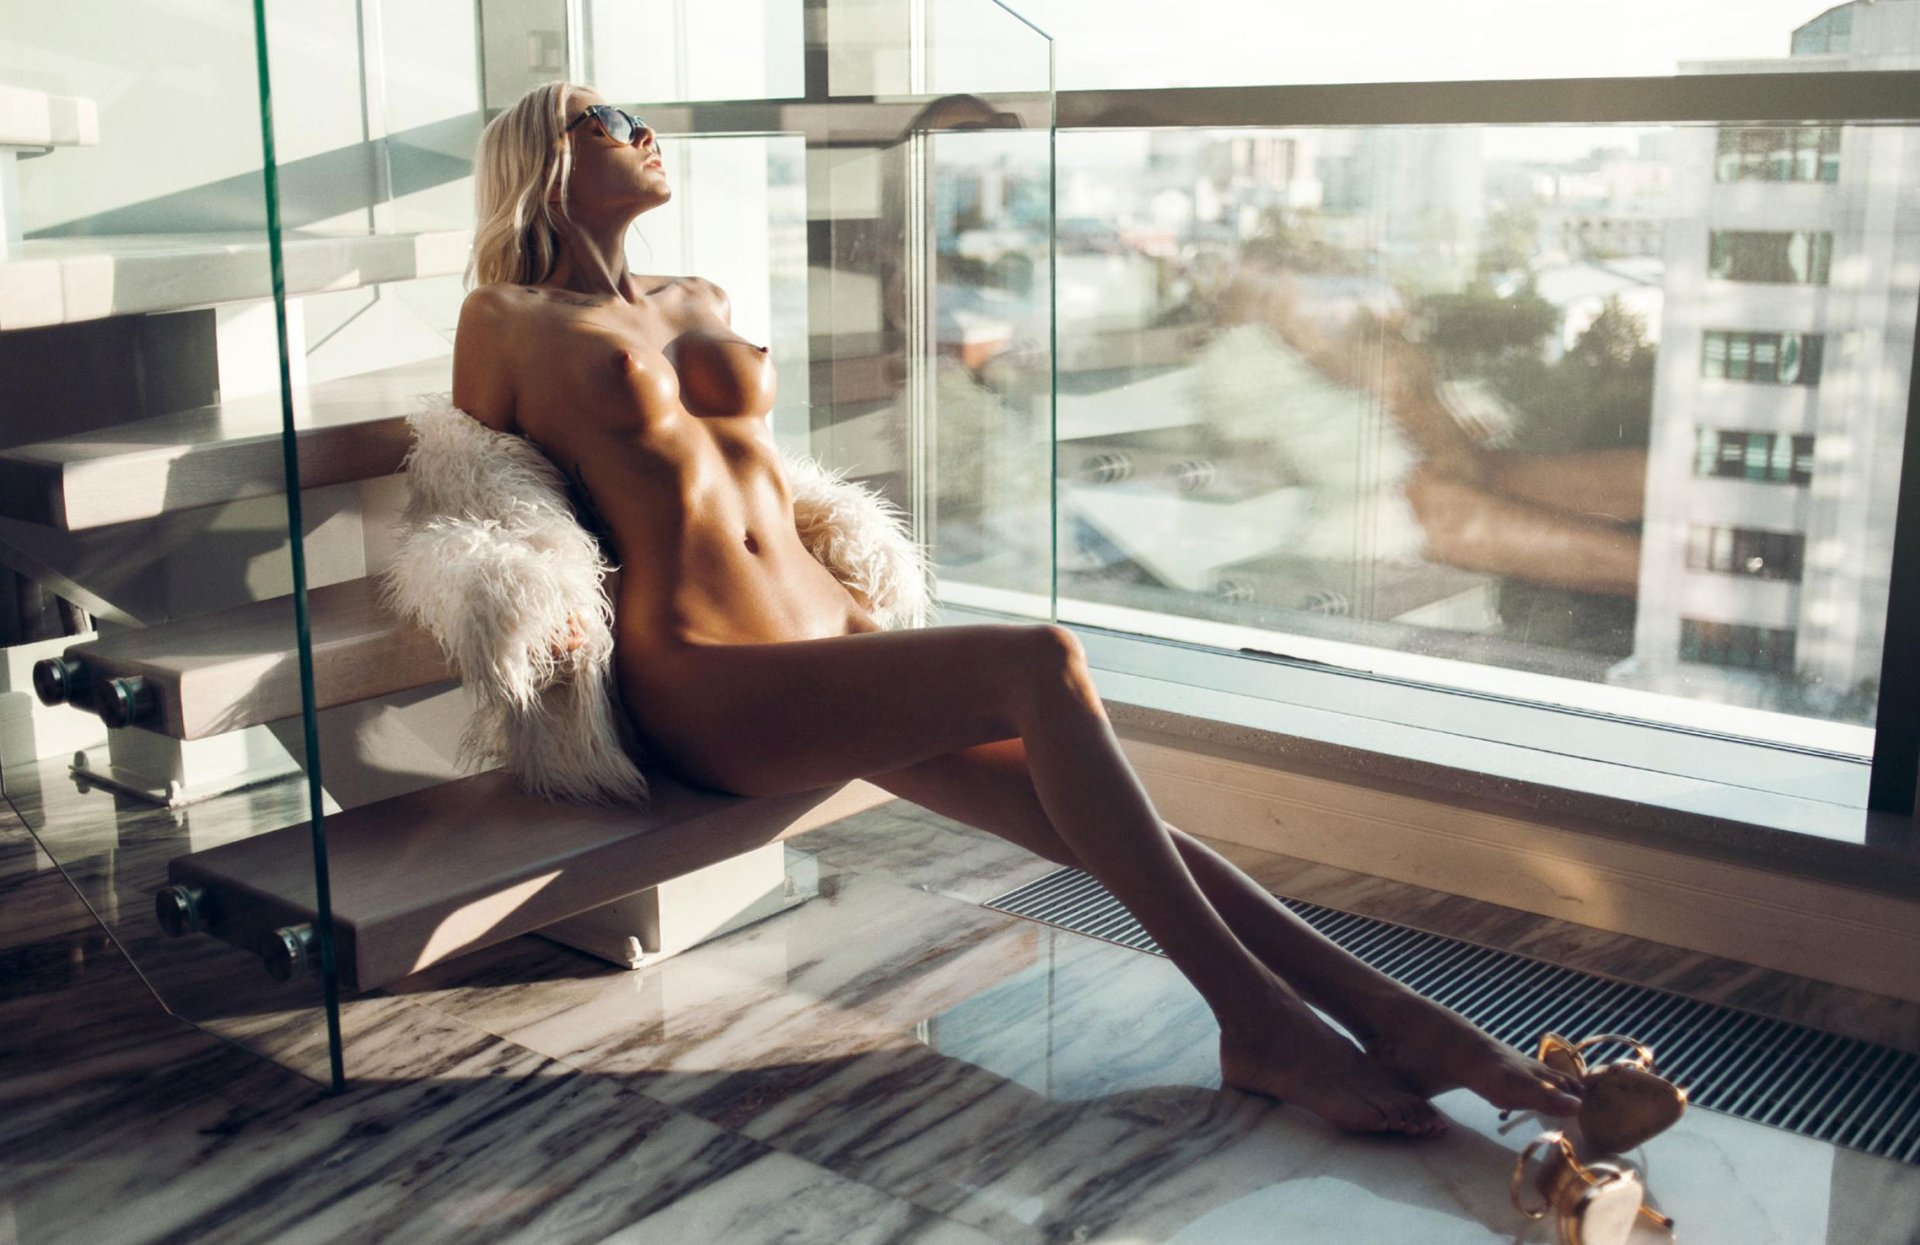 Diana Ageeva Nude Thefappening